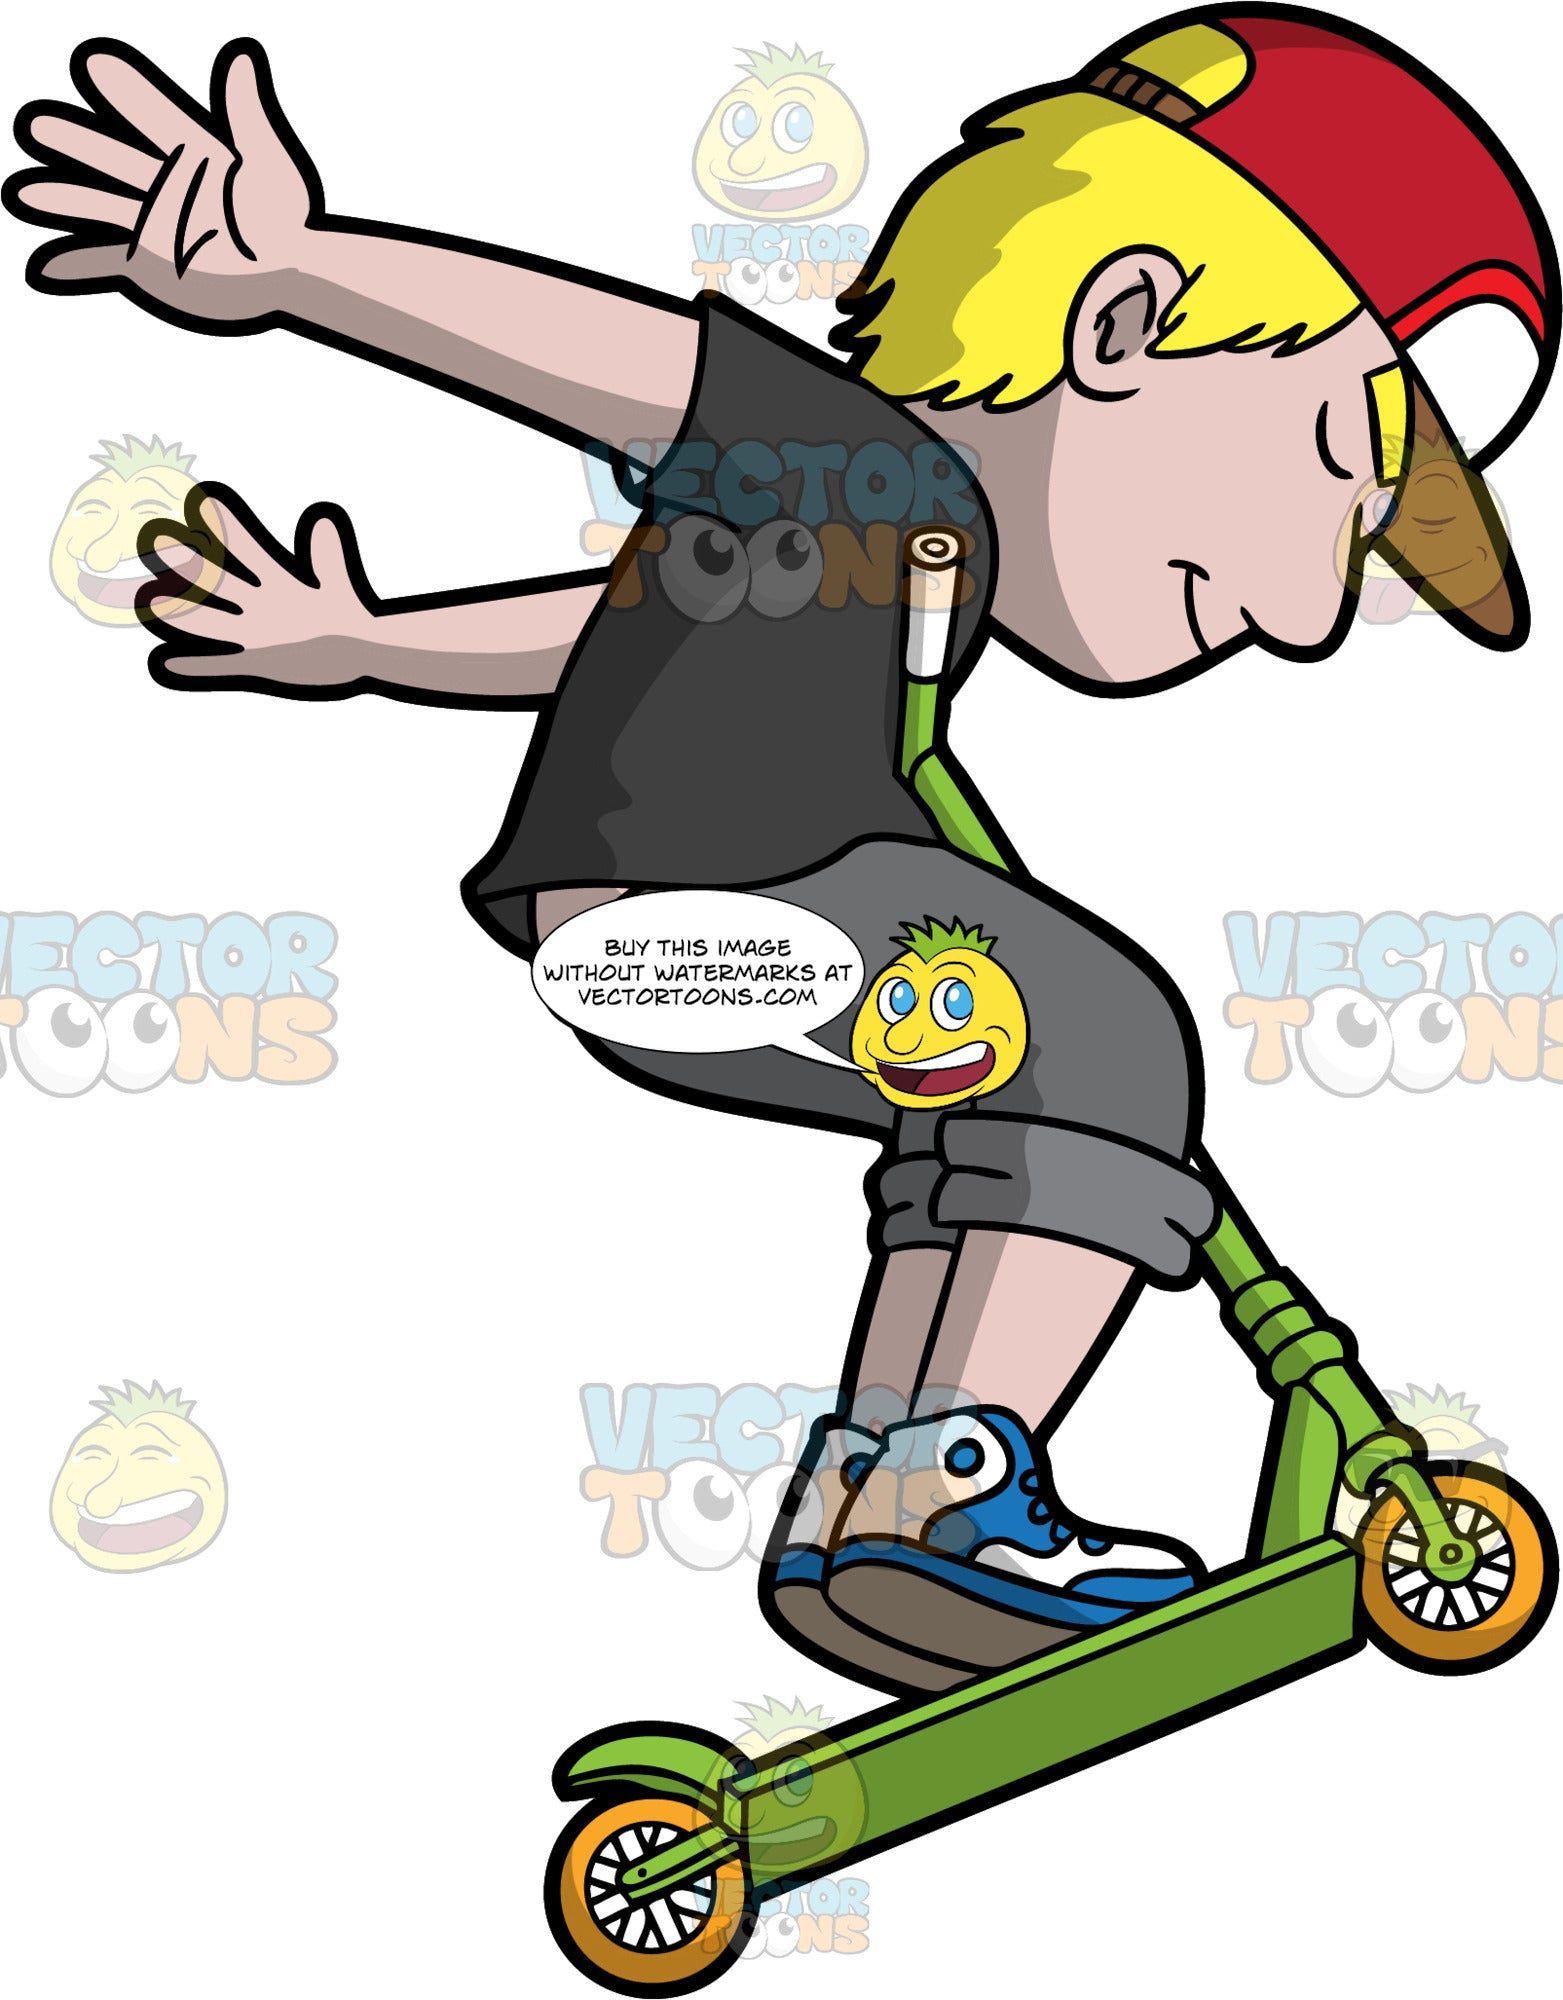 A Carefree Man Riding A Scooter. A man with blonde hair, wearing a red with white cap, black shirt, gray cropped pants, blue and white shoes, shuts his eyes and smiles while swinging his arms back and jumping with his green scooter with yellow wheels